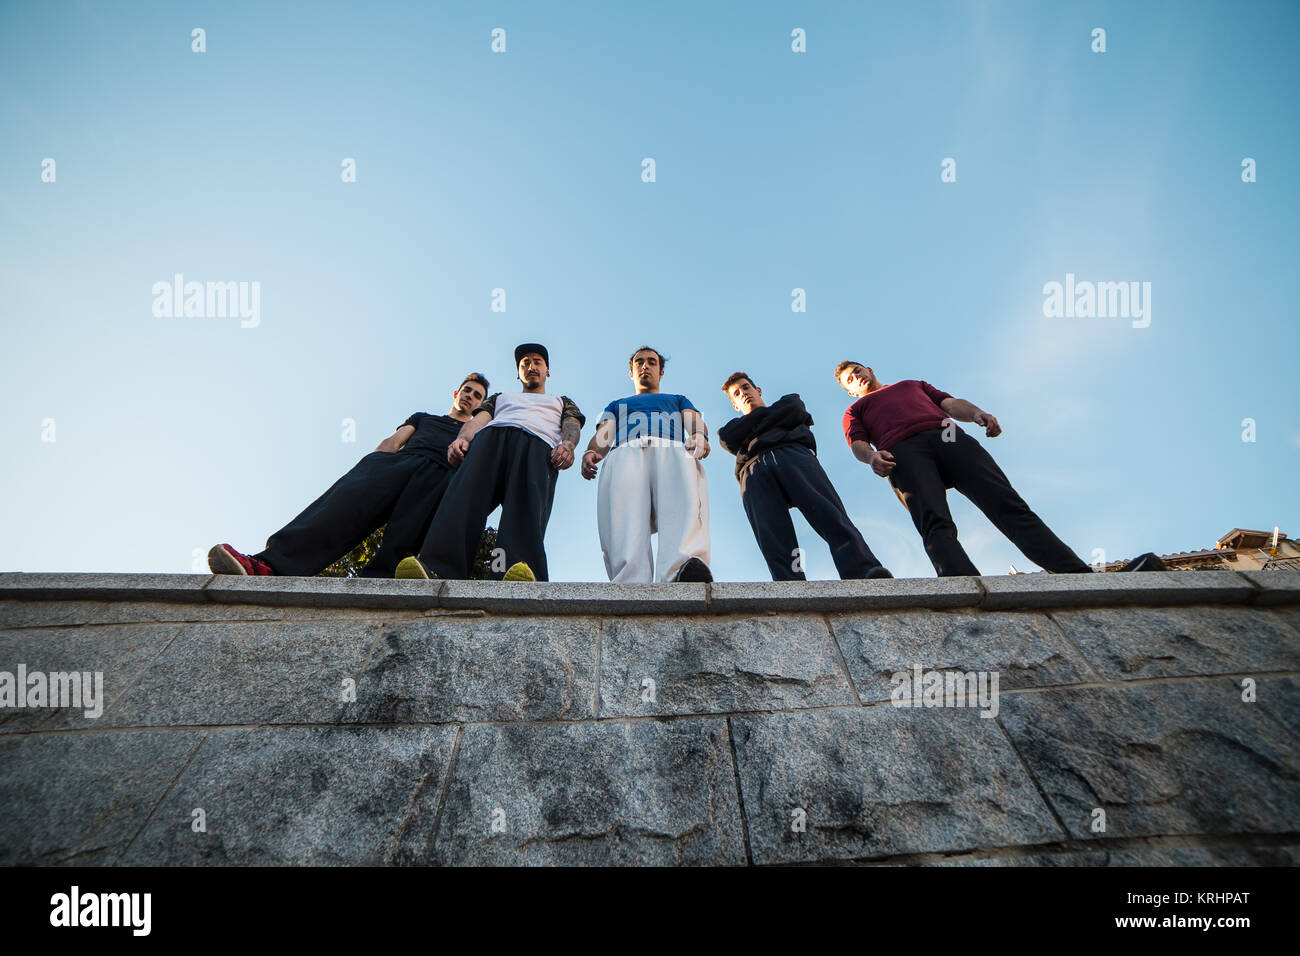 From below group of parkour professionals standing and posing on the wall. - Stock Image